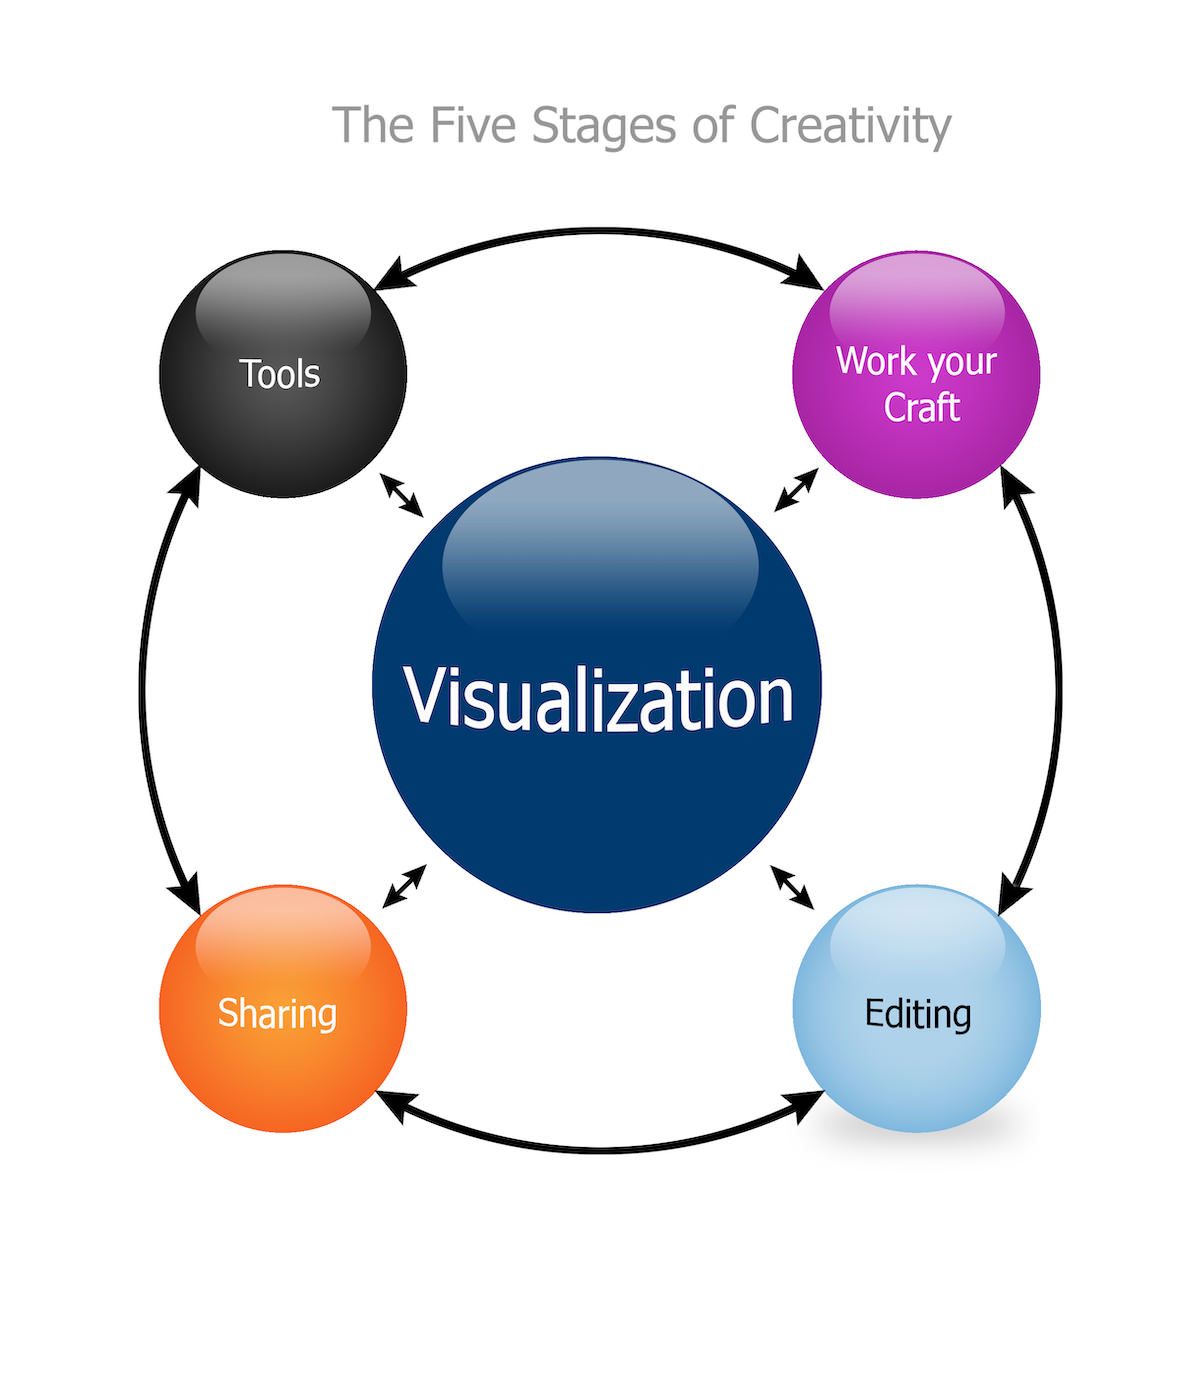 5-stages-of-creativity-2.jpg